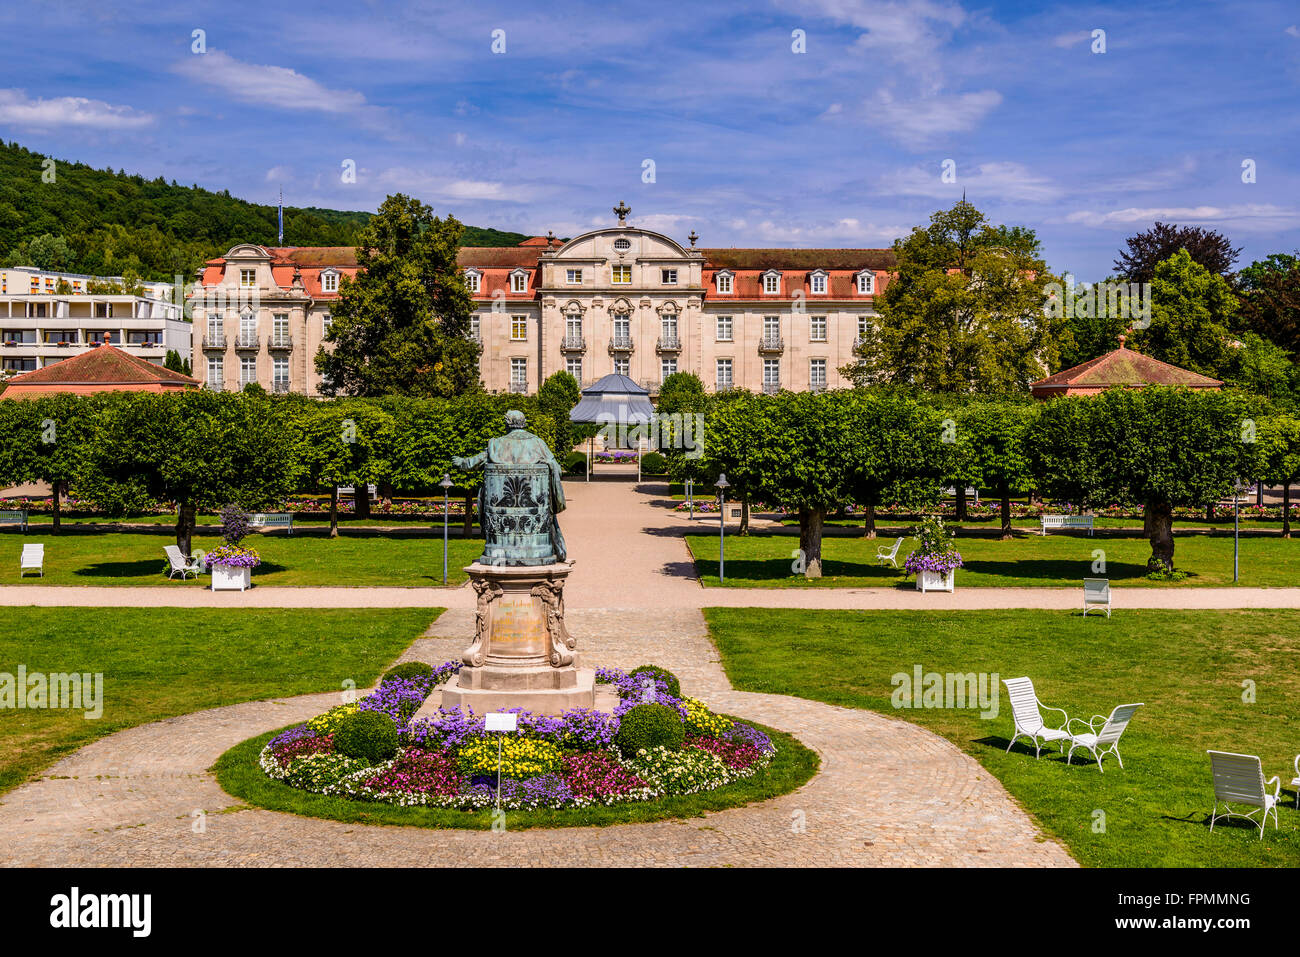 monument of ludwig i stockfotos monument of ludwig i bilder alamy. Black Bedroom Furniture Sets. Home Design Ideas